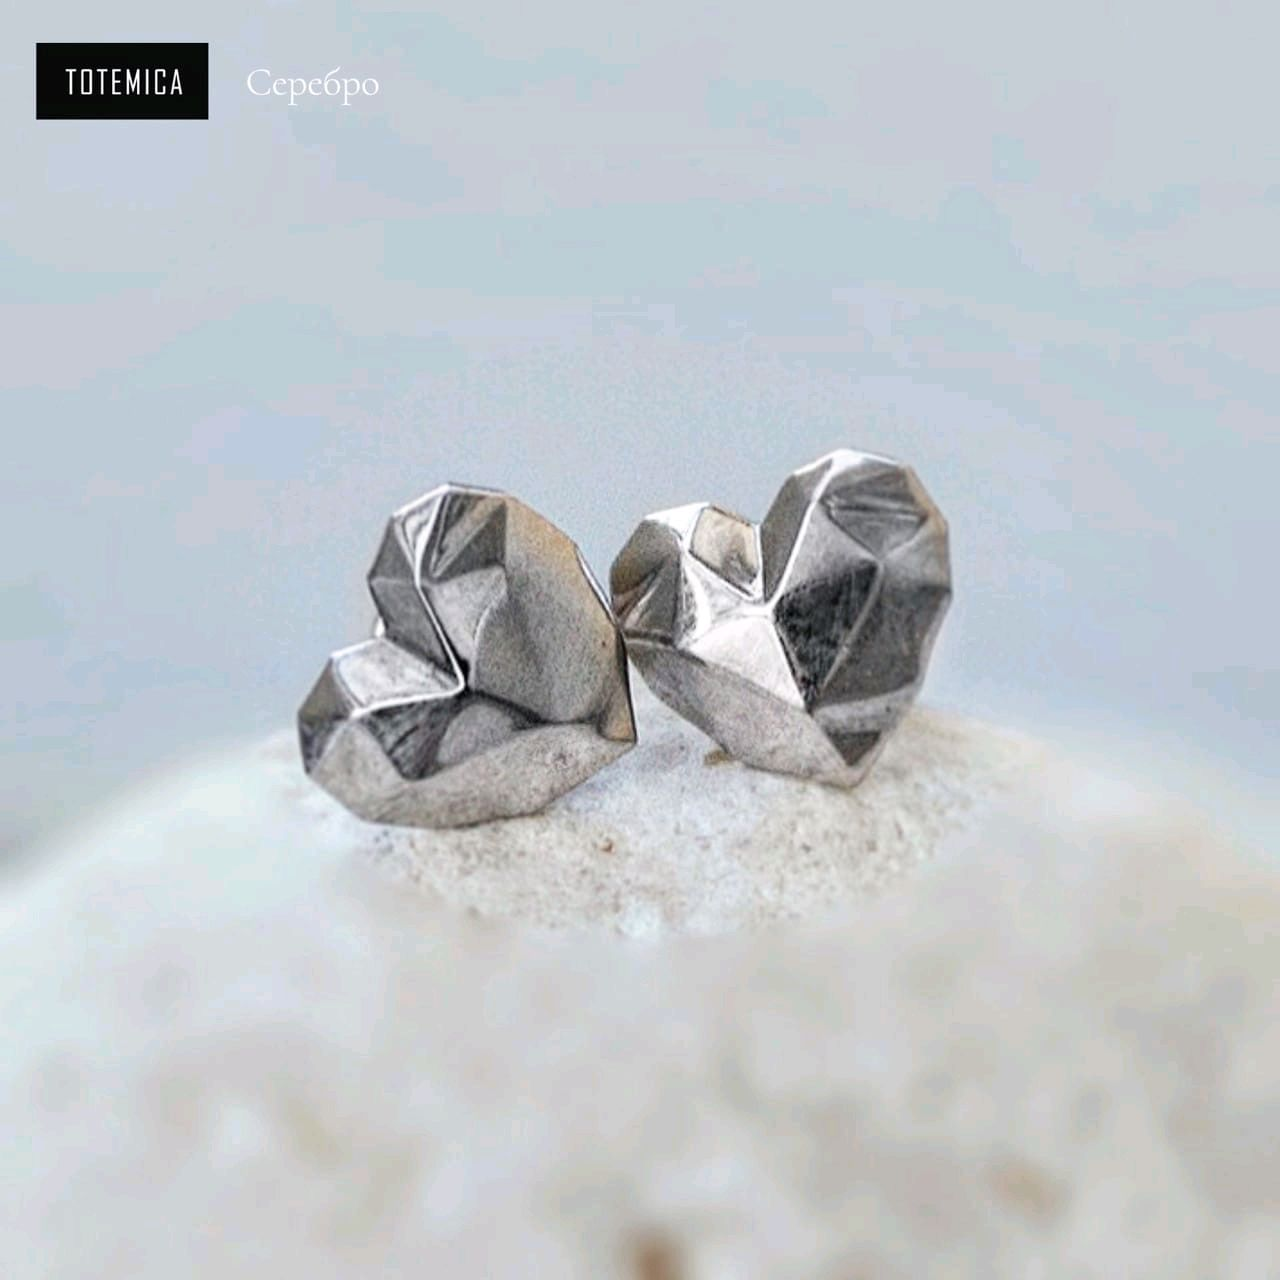 Silver Heart stud earrings, 925 silver, Stud earrings, Moscow,  Фото №1